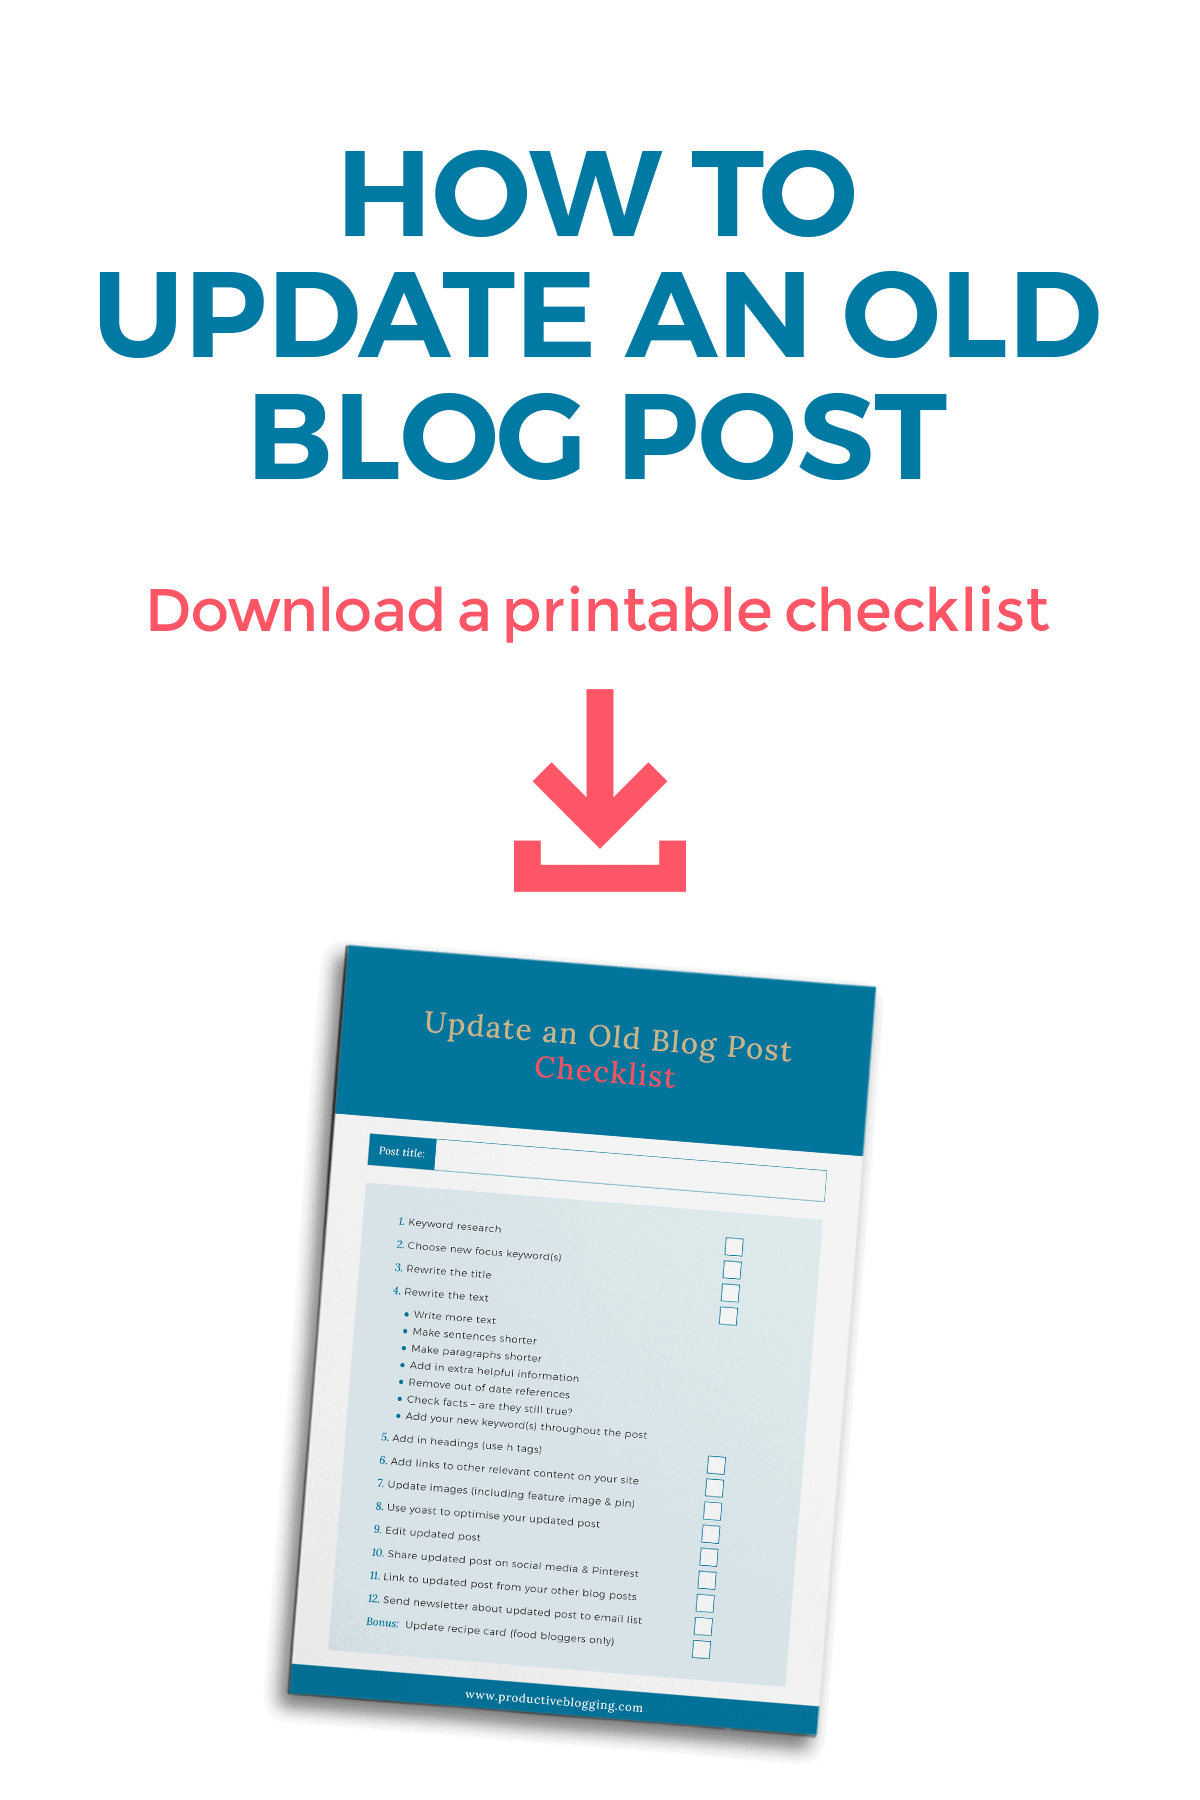 Image of checklist with caption above which reads: How to update an old blog post. Download a printable checklist.